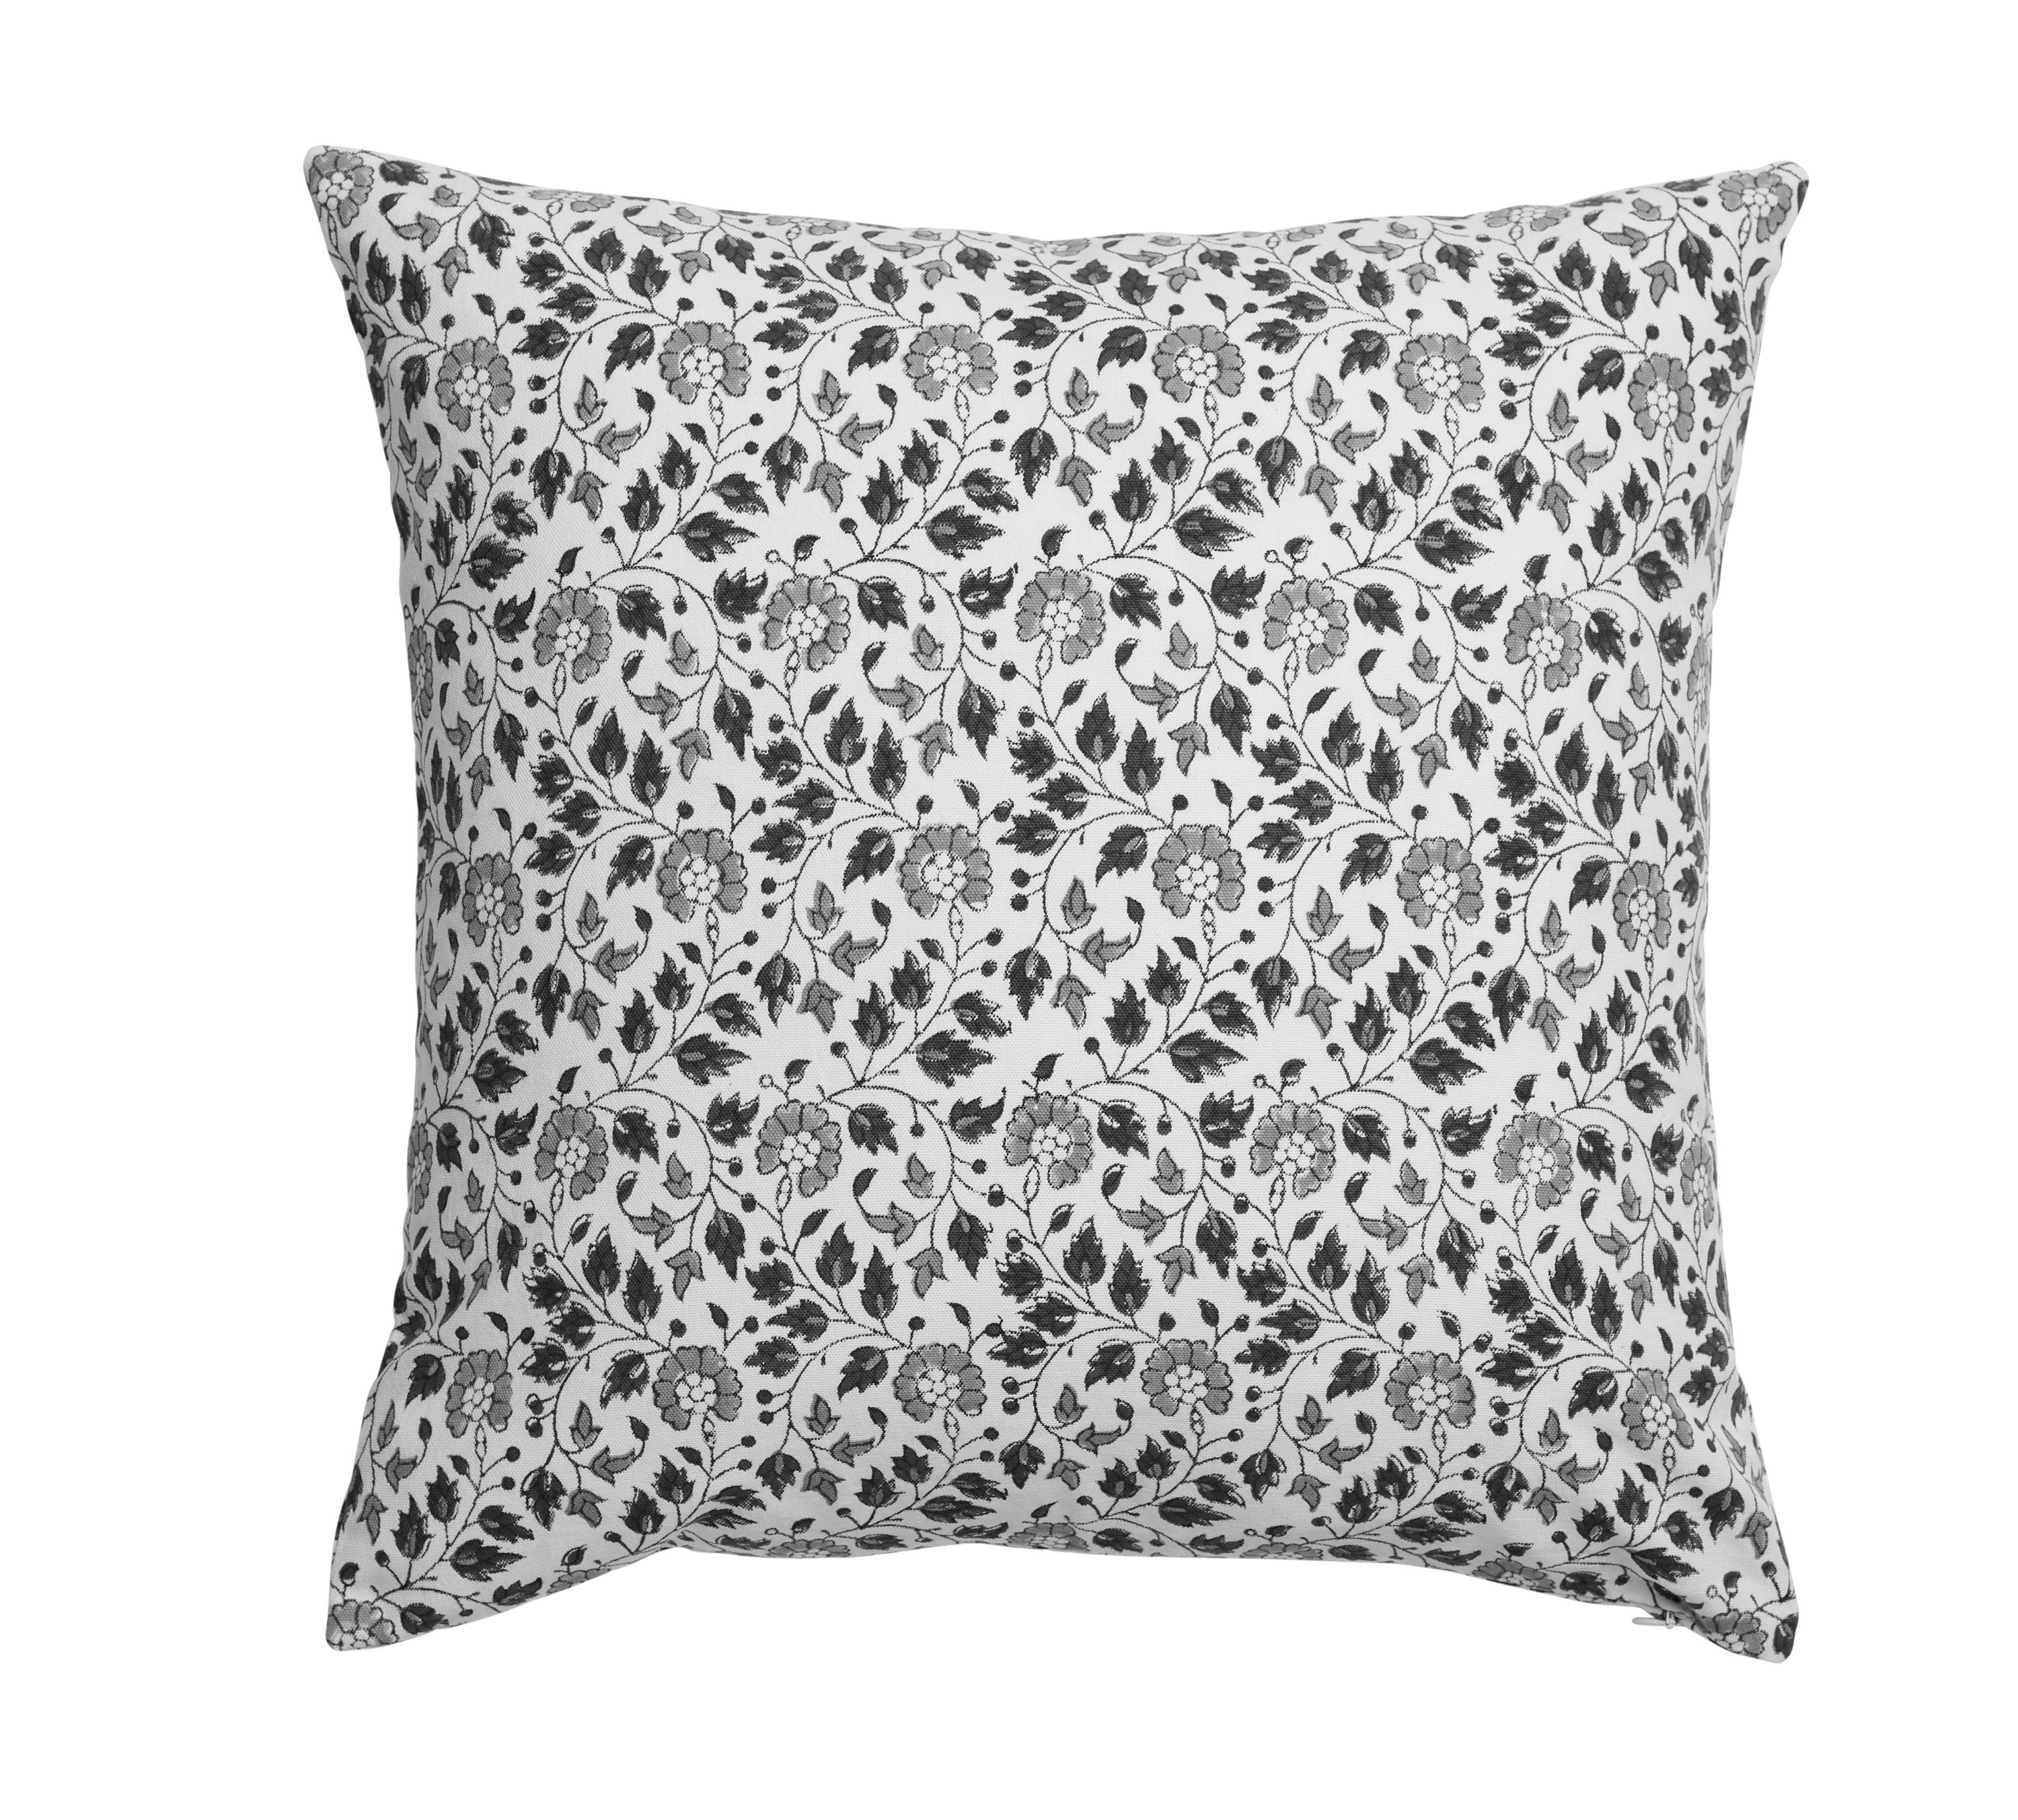 Cushion Cover - Indian Summer - Black & Grey